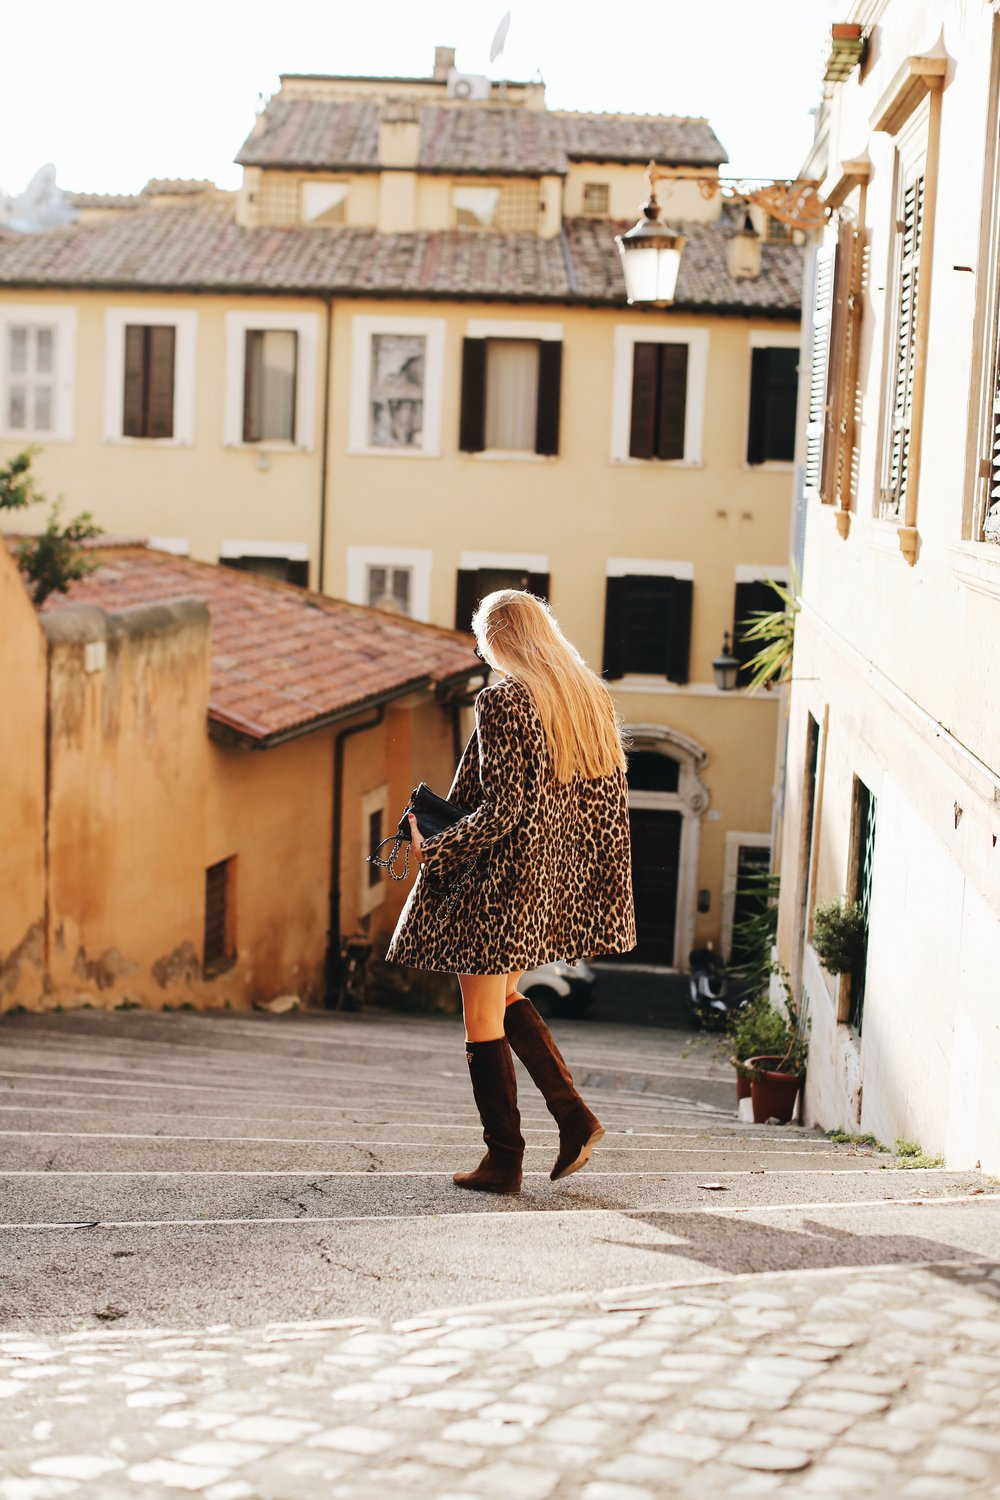 These boots were made for walking… the sun-drenched autumn streets of Rome